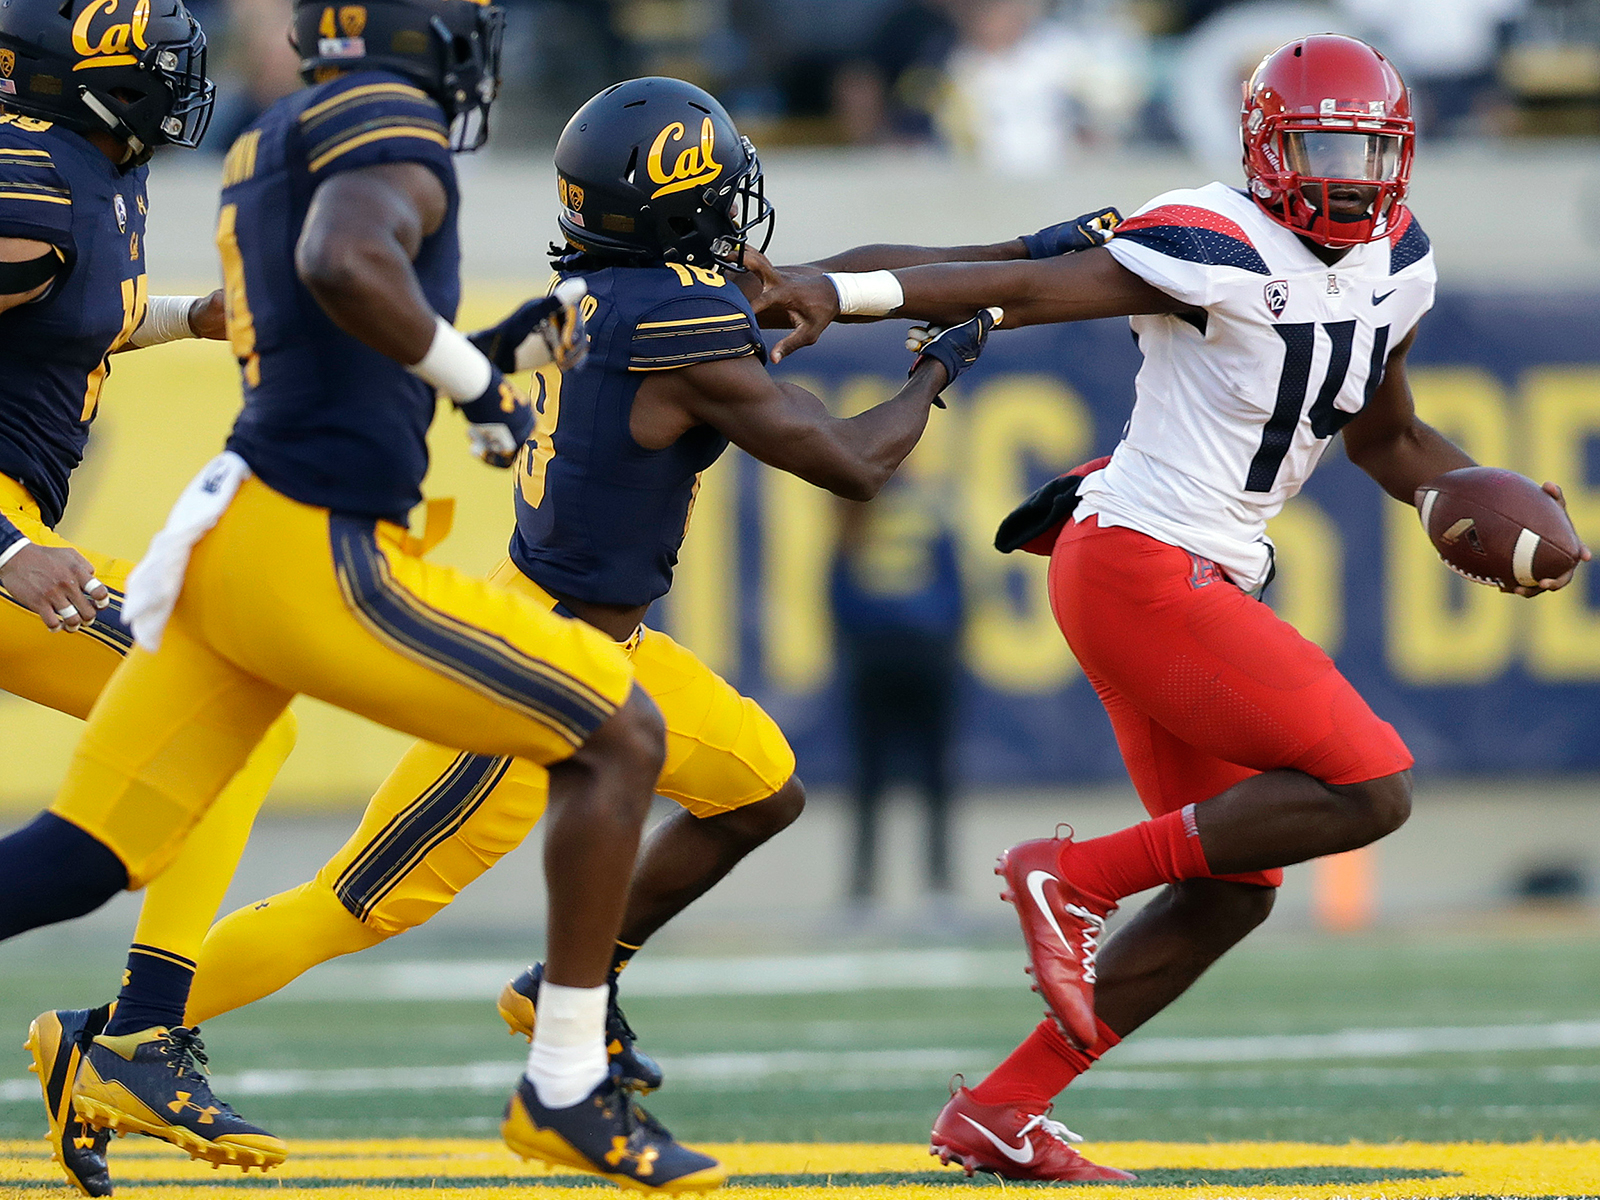 Khalil Tate has been a nearly unstoppable dual threat since Arizona installed him as the starting quarterback.